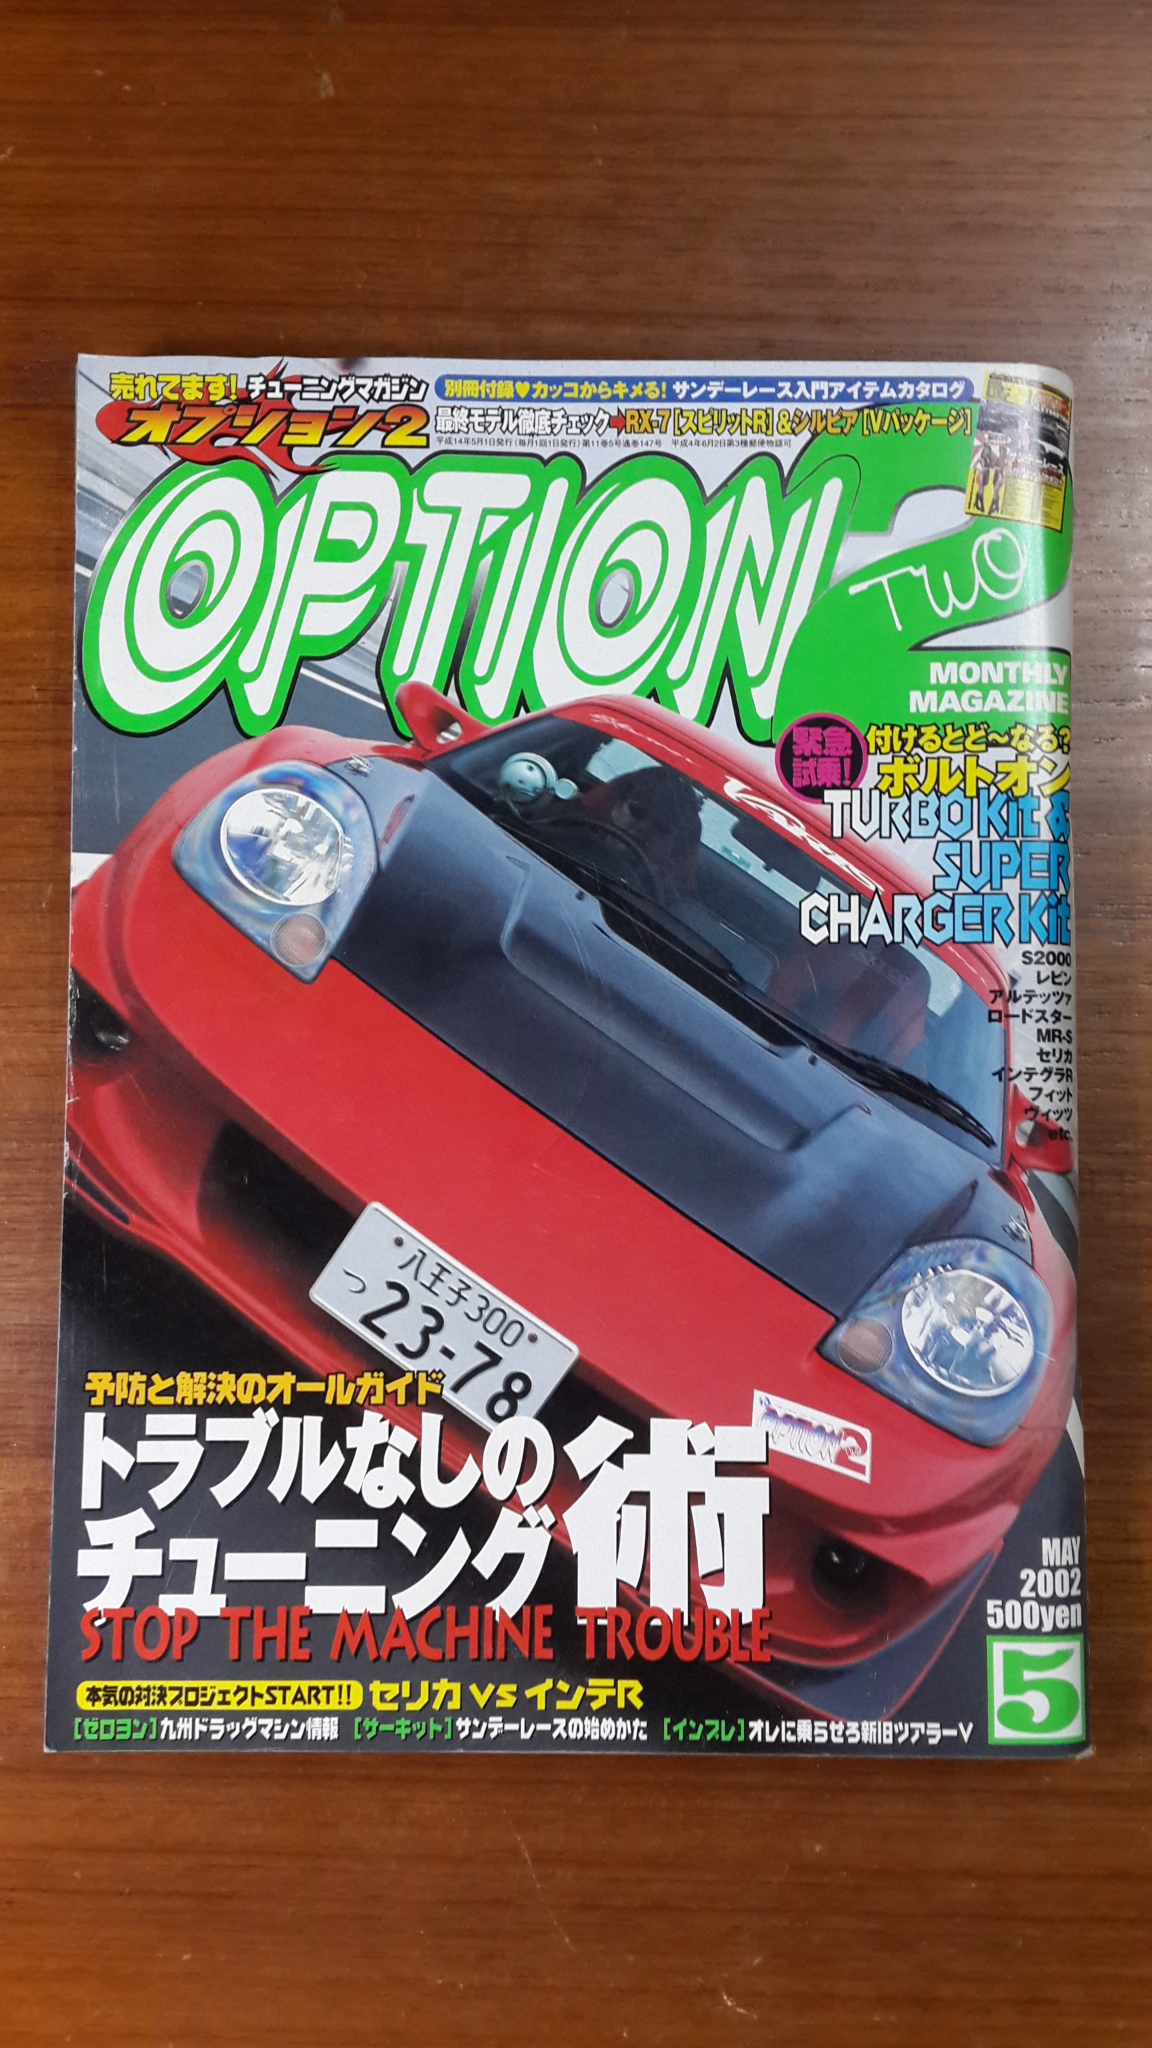 OPTION TWO 2 (Japan) : 2002 / 5